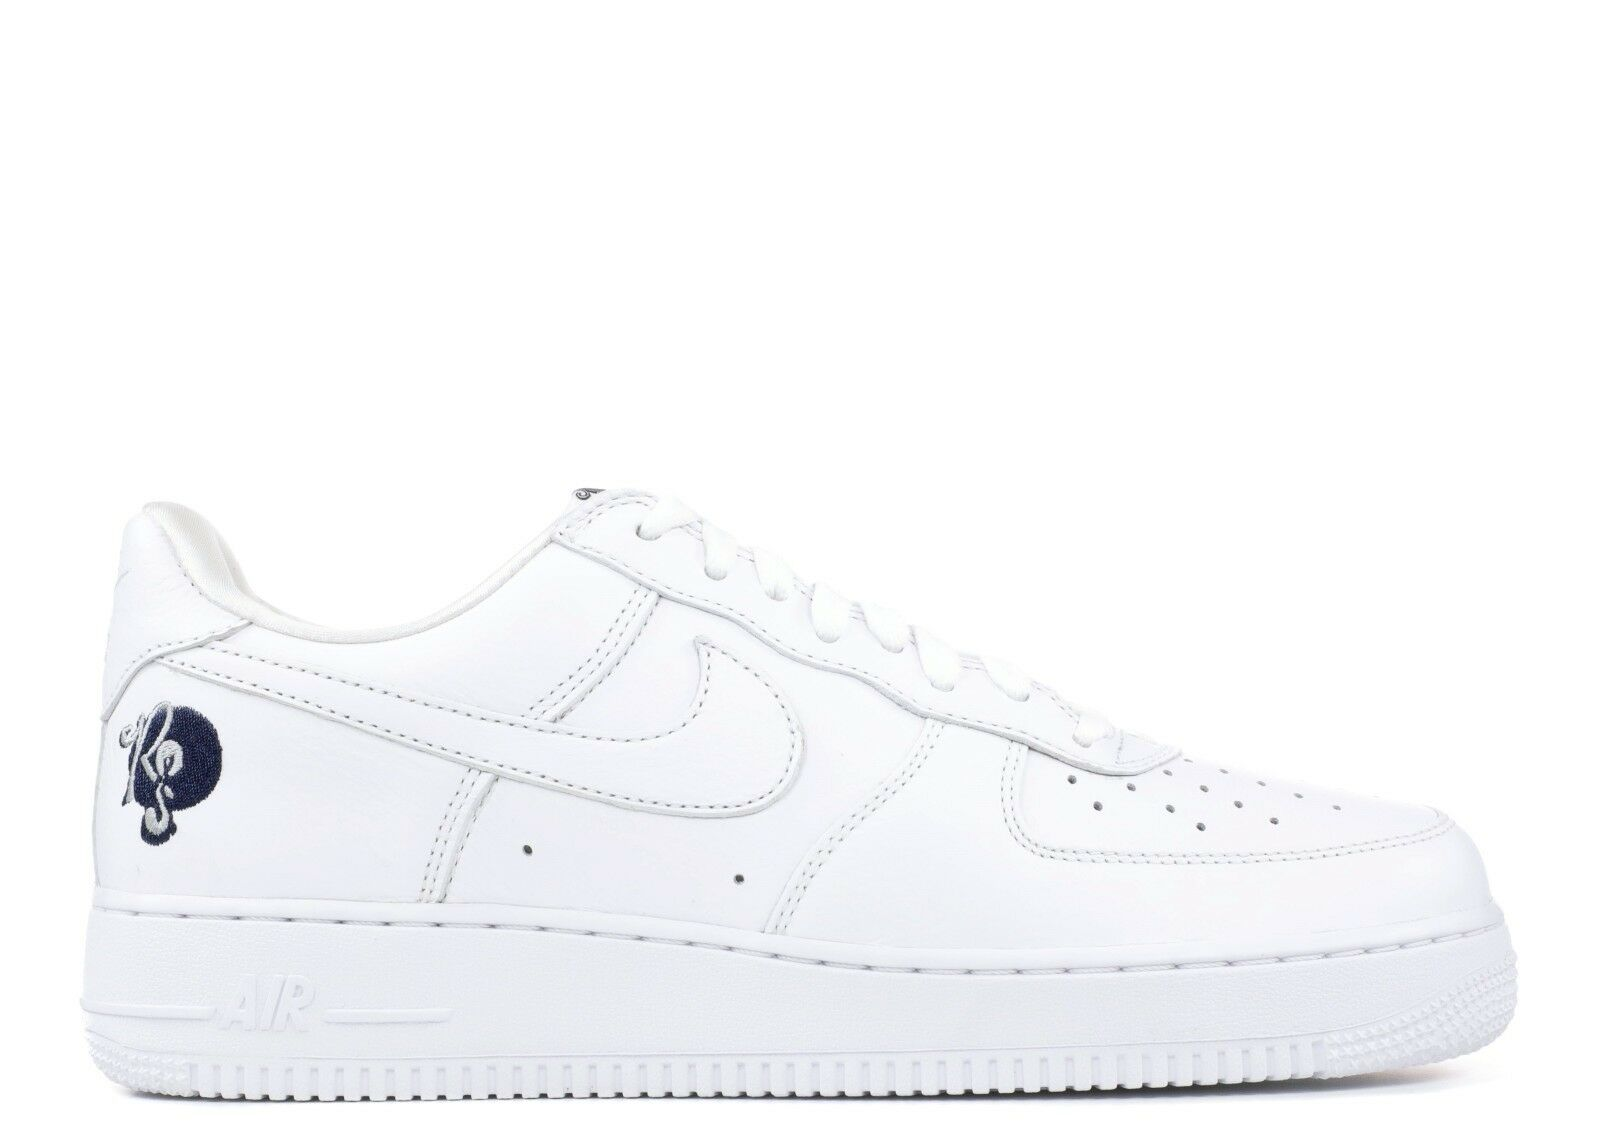 Nike Air Force 1 '07 Rocafella Roc-A-Fella White AO1070-101 New DS Comfortable and good-looking